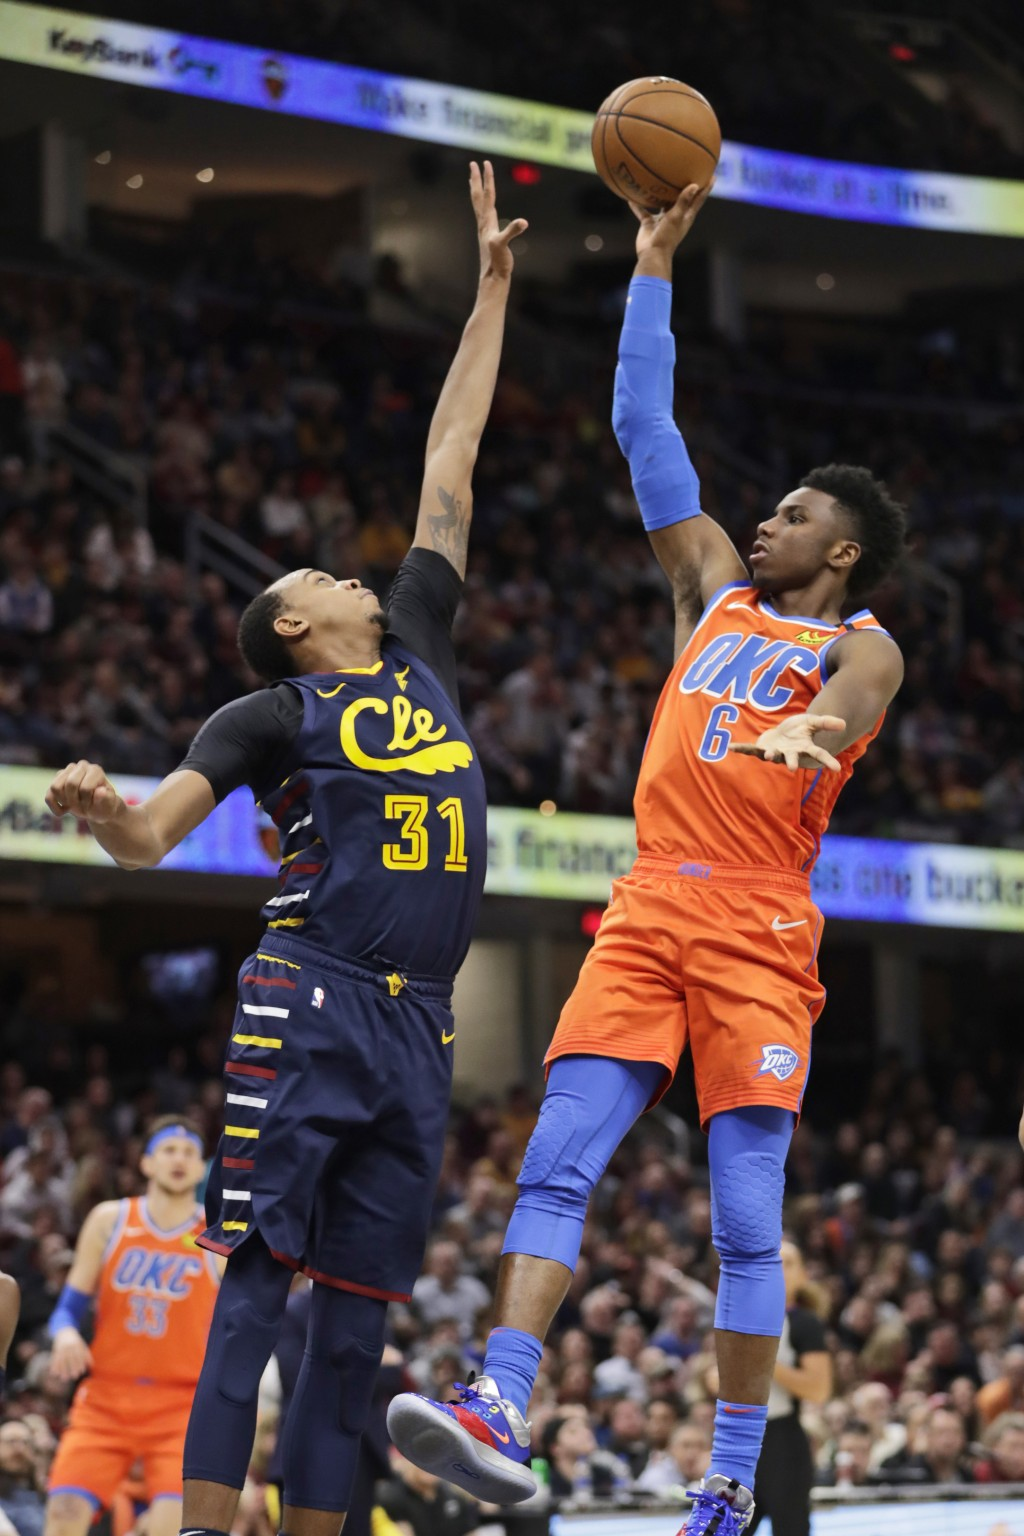 Oklahoma City Thunder's Hamidou Diallo (6) drives to the basket against Cleveland Cavaliers' John Henson (31) in the second half of an NBA basketball ...